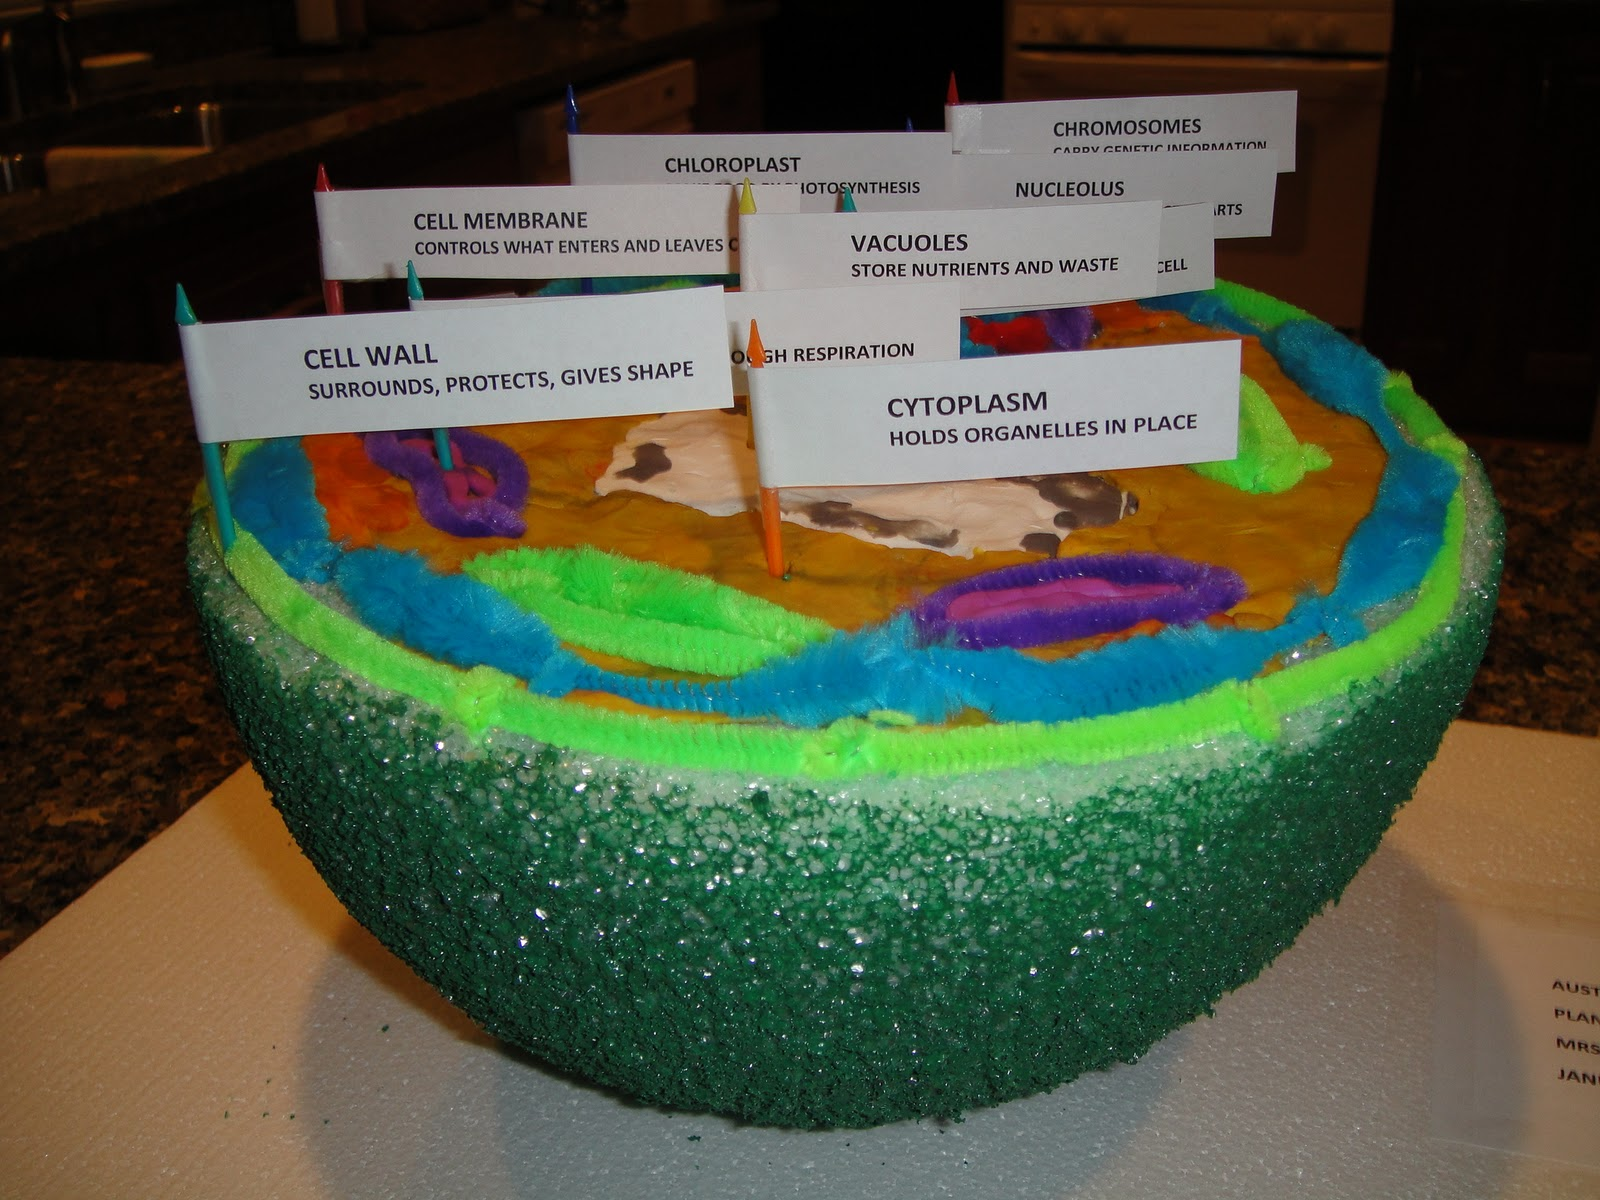 Sample of Plant Cell Projects http://www.friendshiptea.net/2011/02/sixth-grade-science-project.html